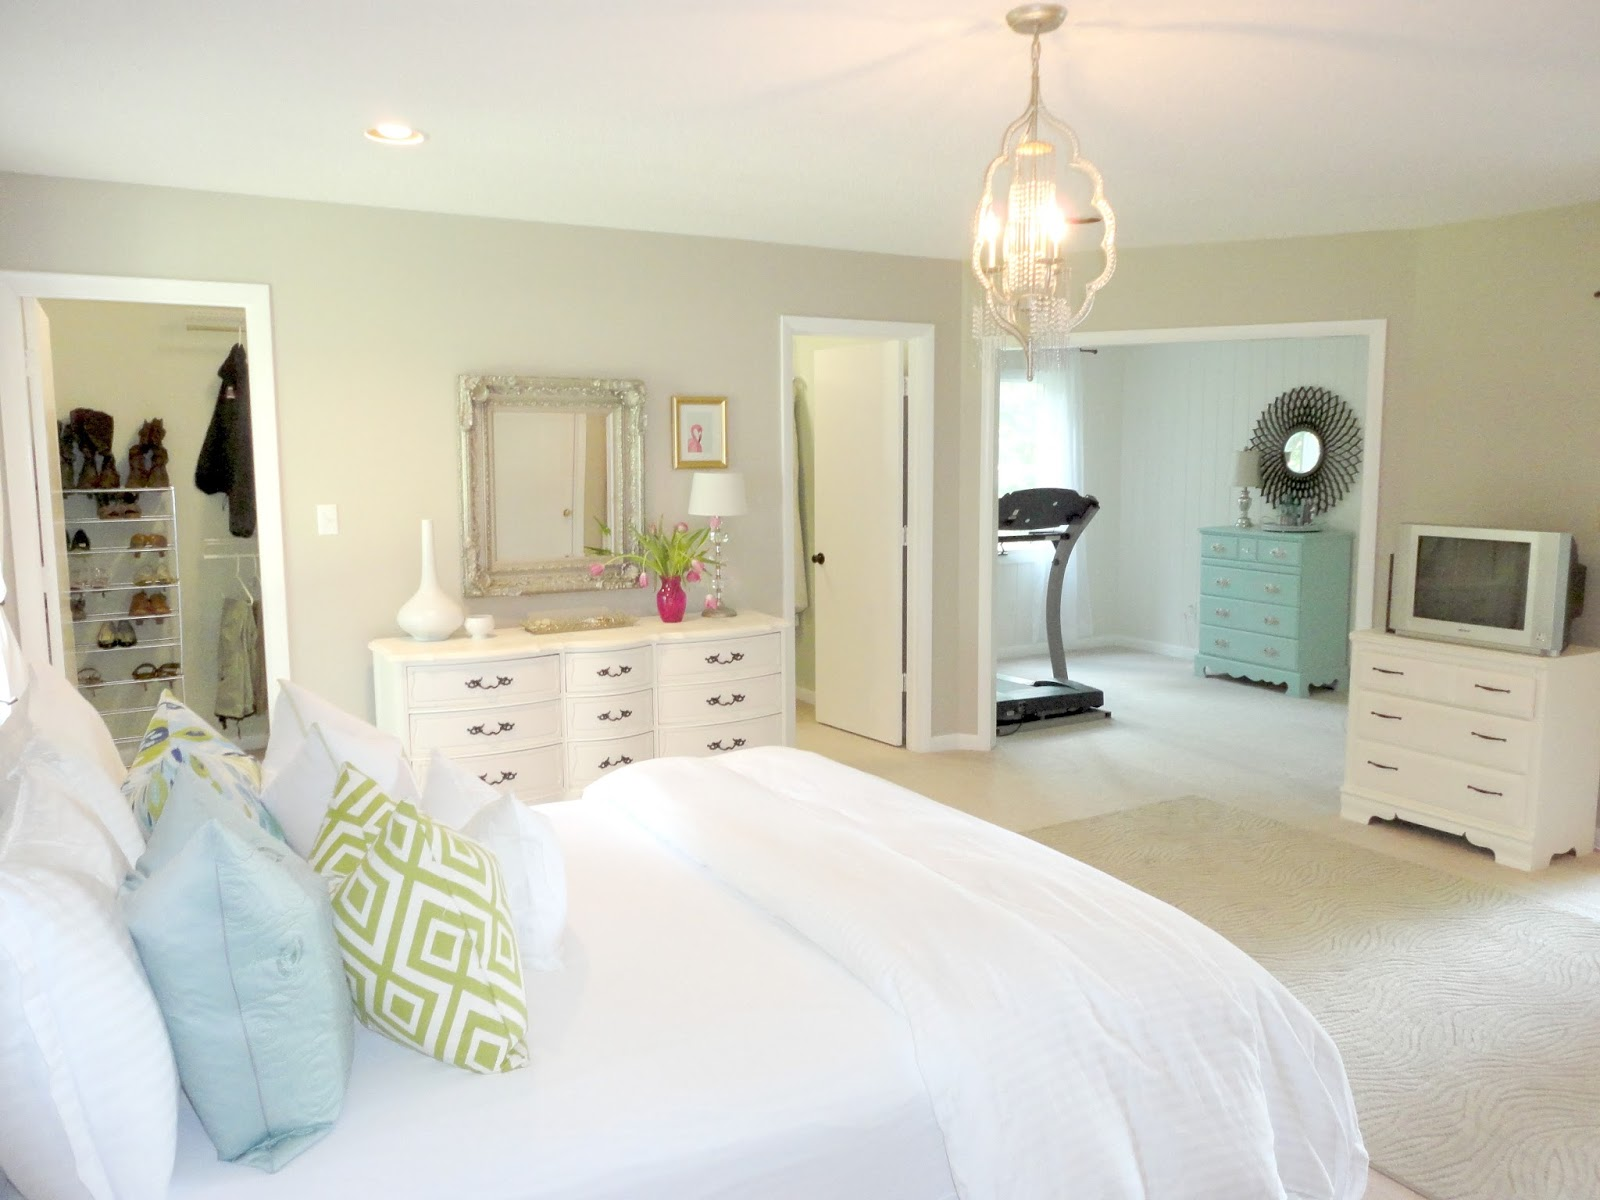 Different Ways Of Deciding Who Gets The Small Bedroom